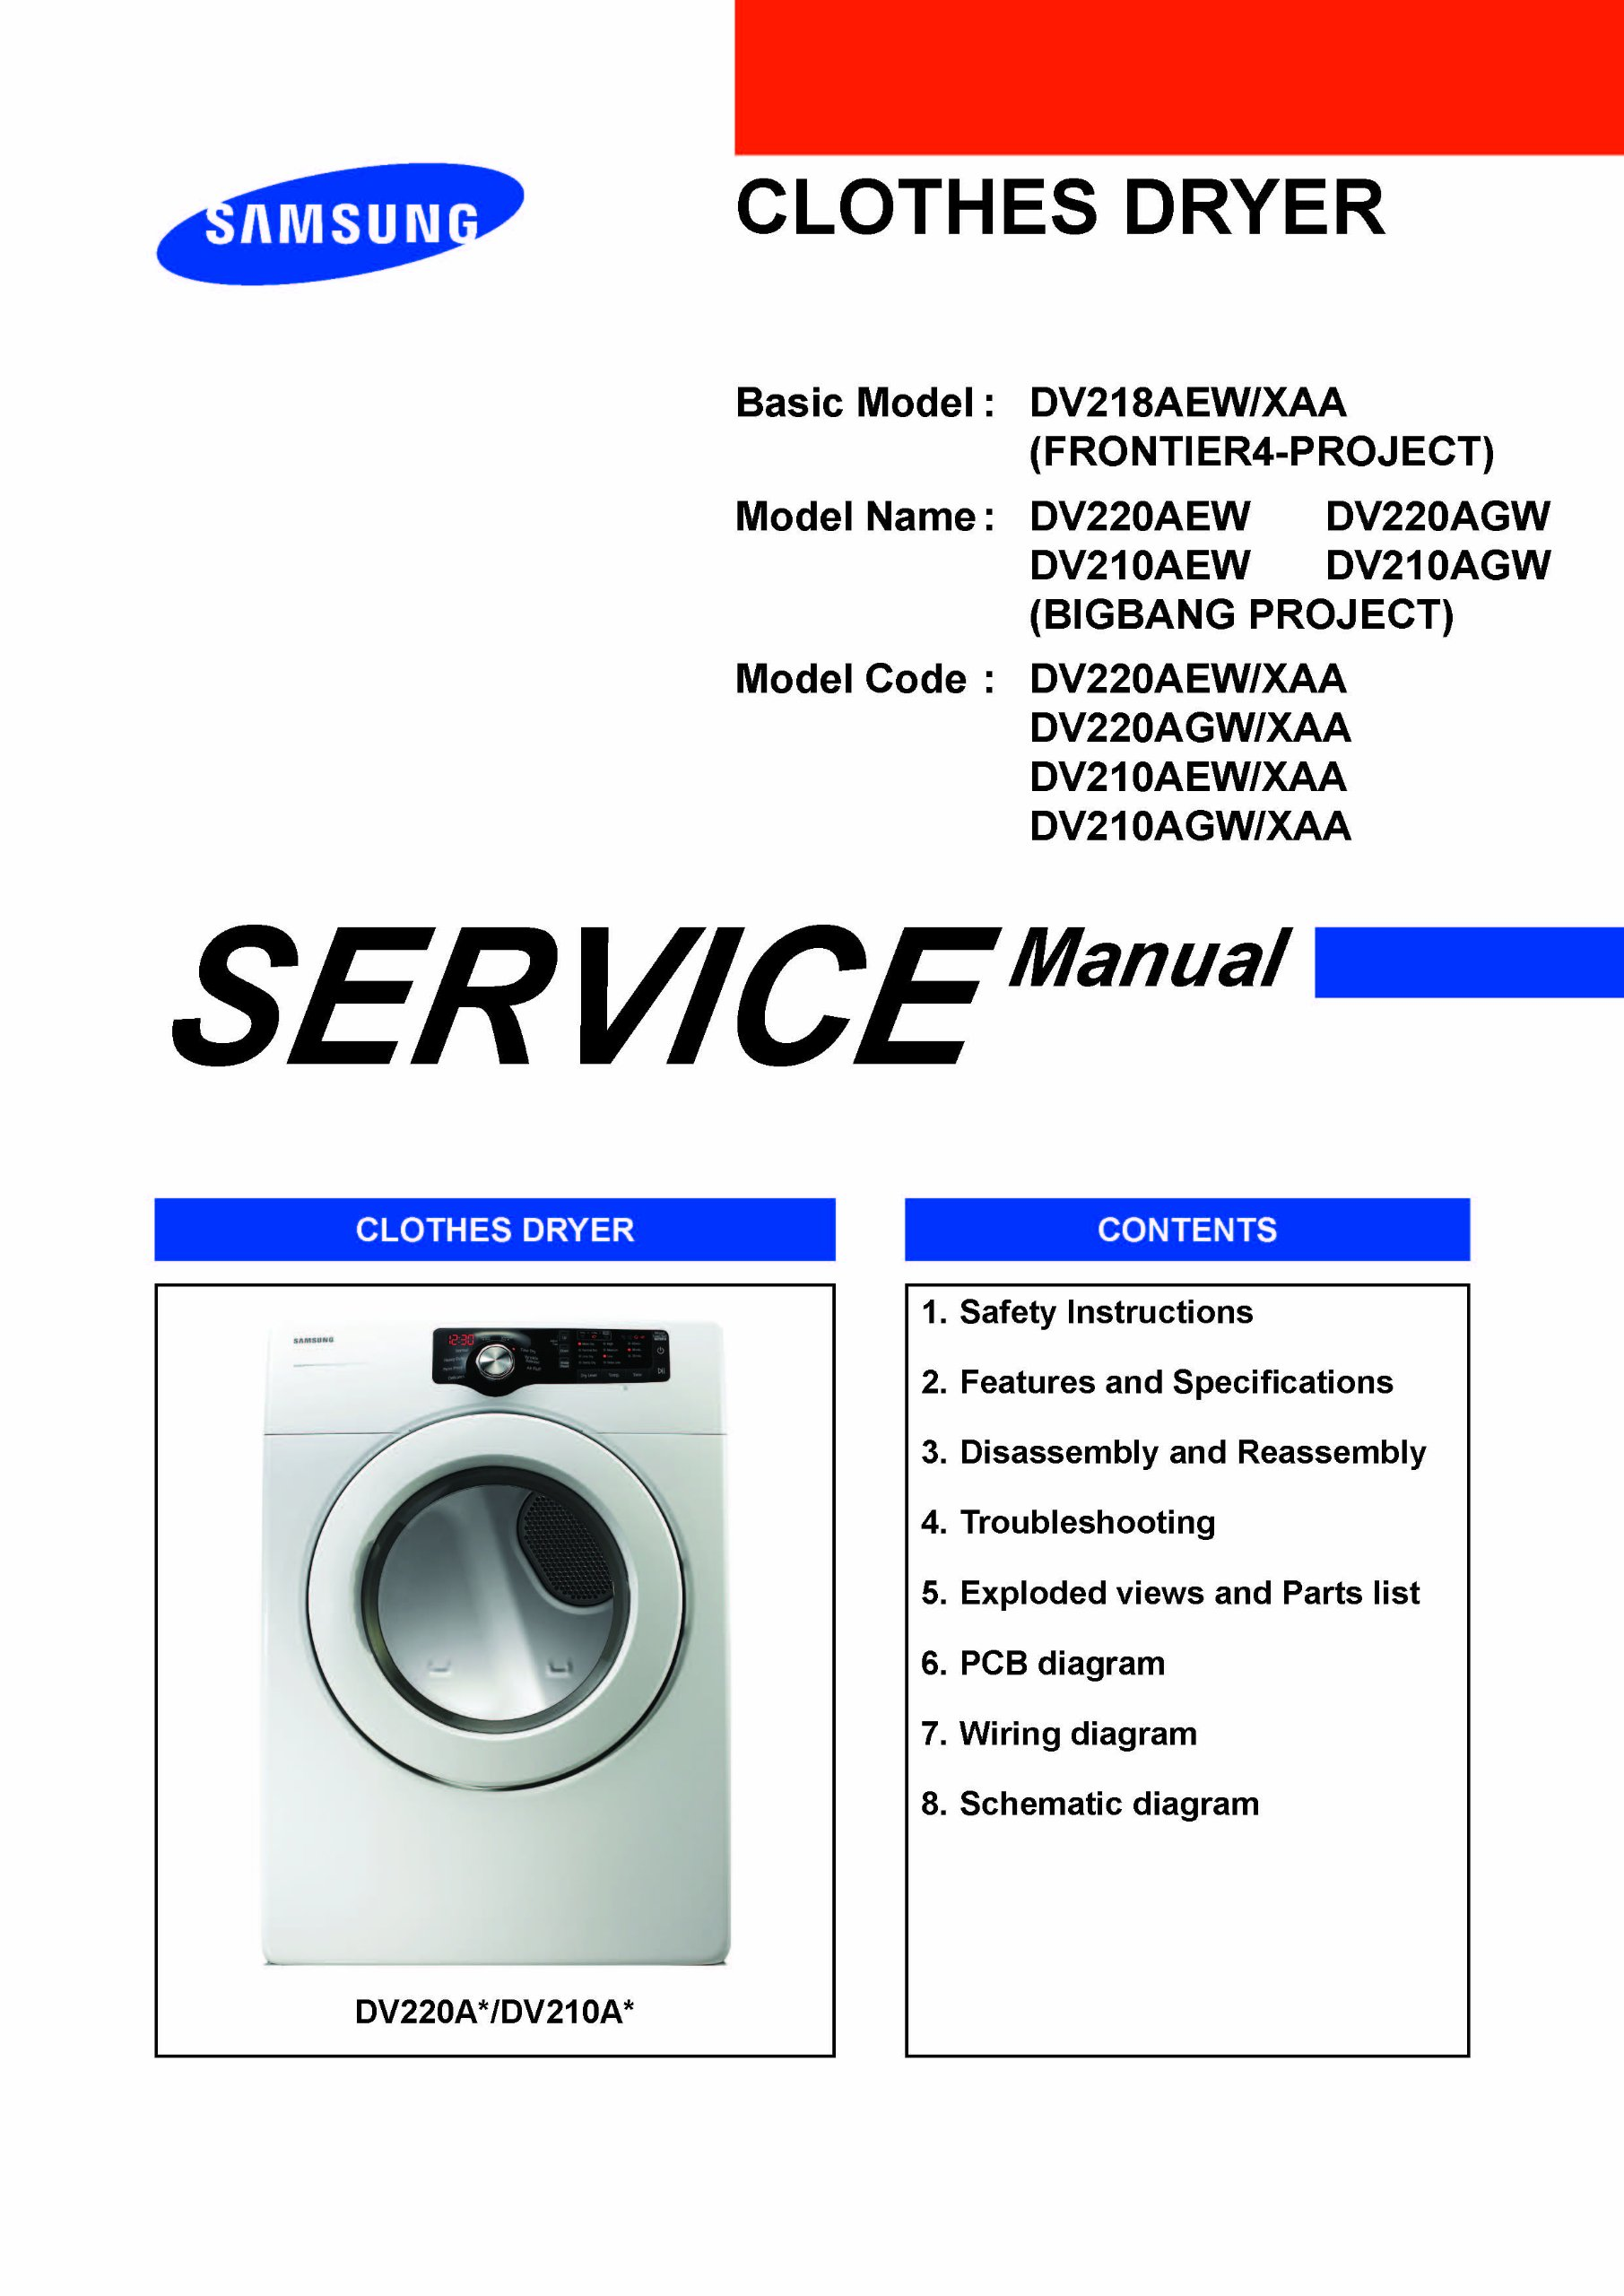 samsung dv220aew xaa and dv210aew xaa service manuals samsung rh amazon com Samsung DV210AEW XAA Heating Element Samsung Washer and Dryer